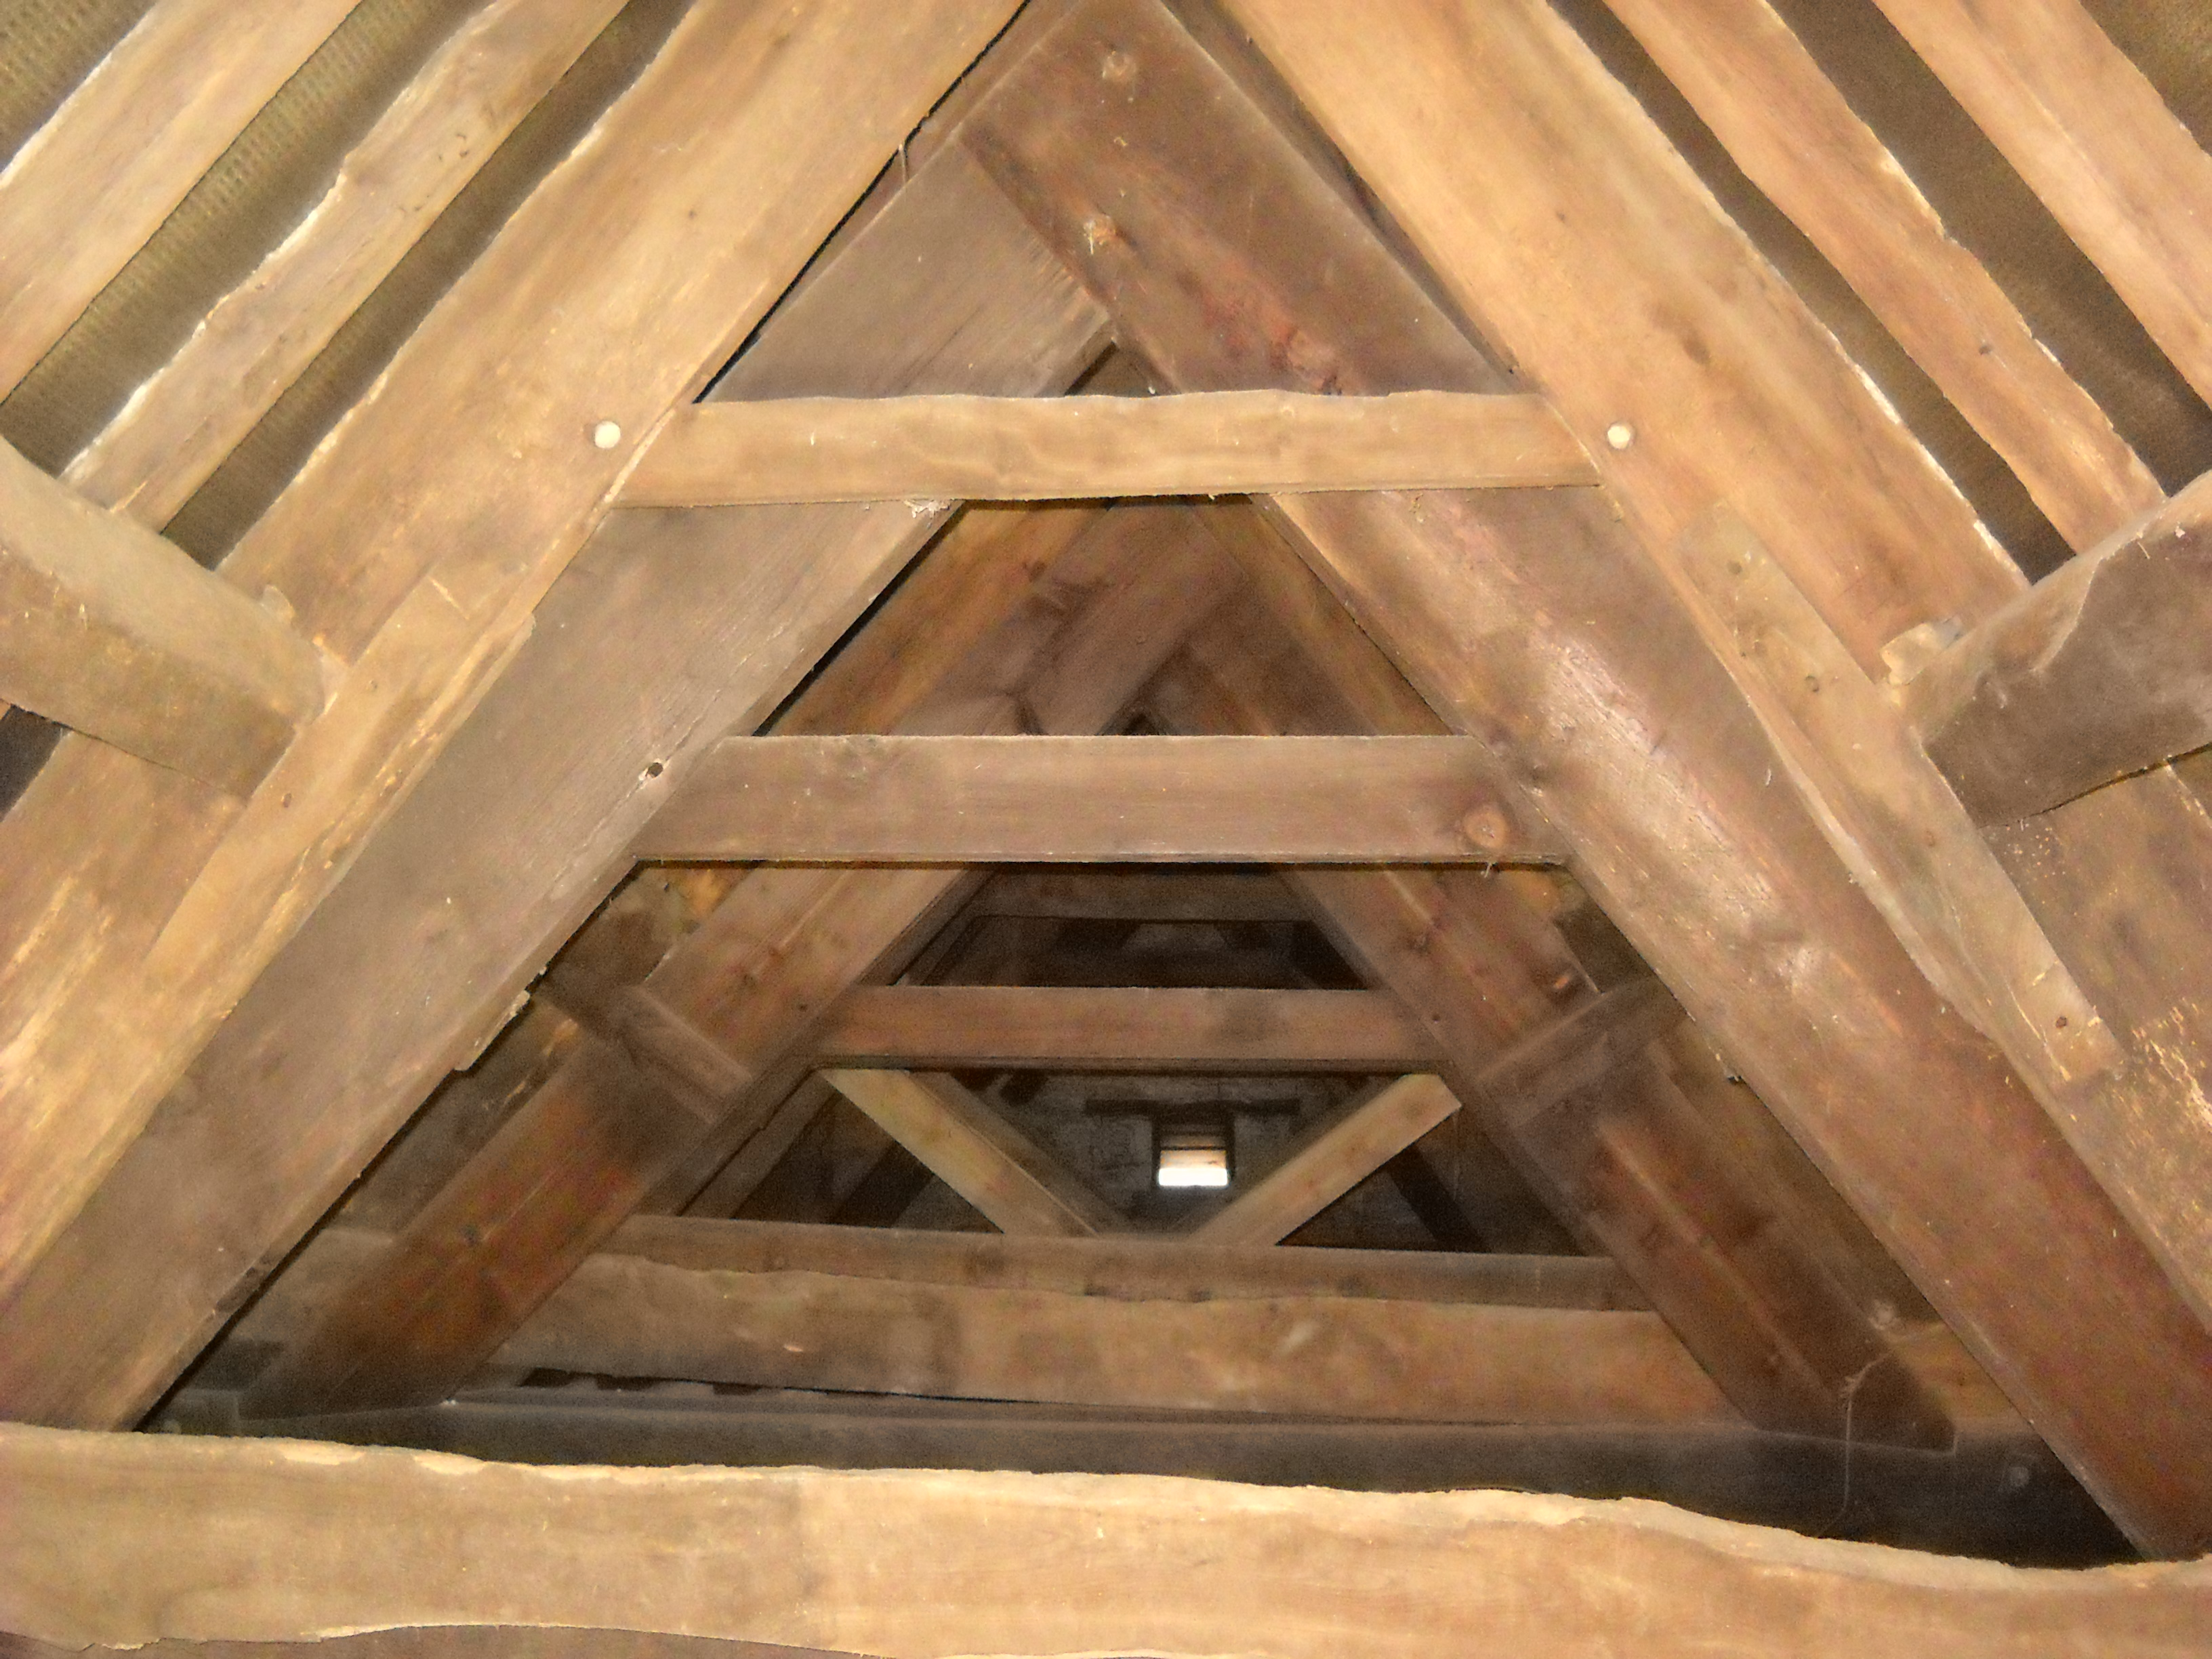 The roof above the loggia. This was tree-ring dated along with the roof timbers in the main house to the period 1517-21.